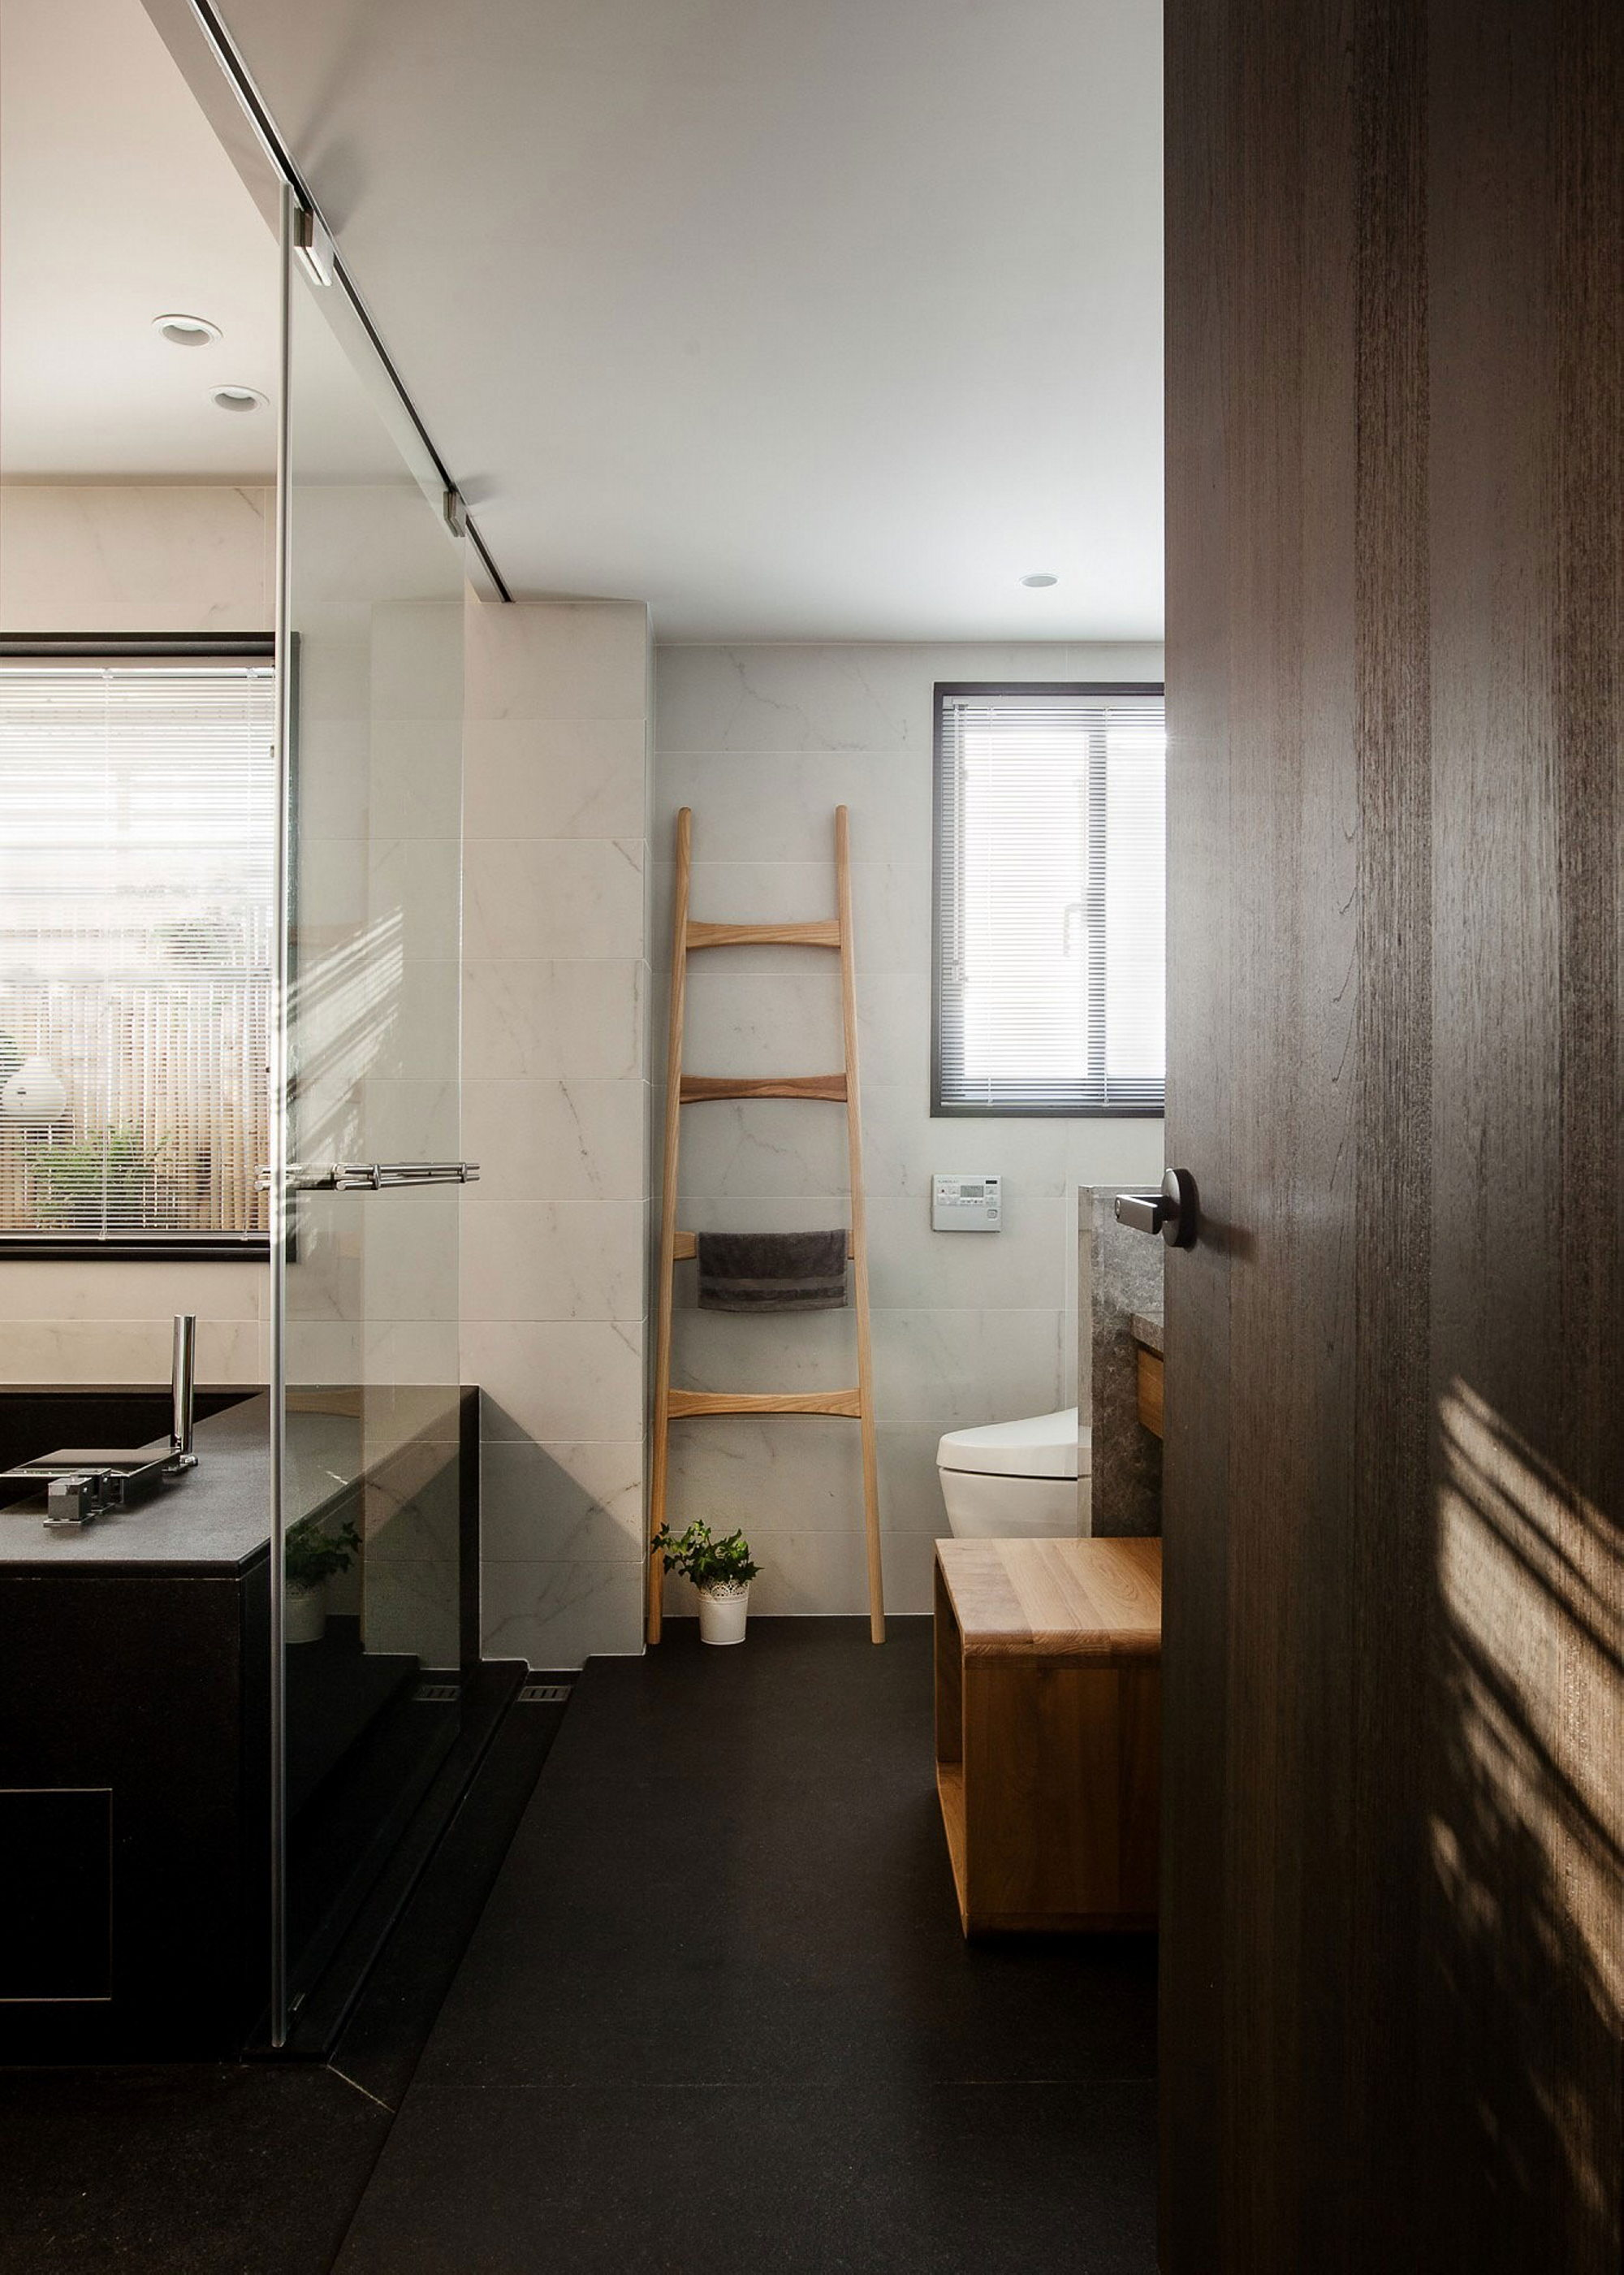 The wang s house apartment in taiwan upon the project of the pm design studio - Badkamer mansard ...